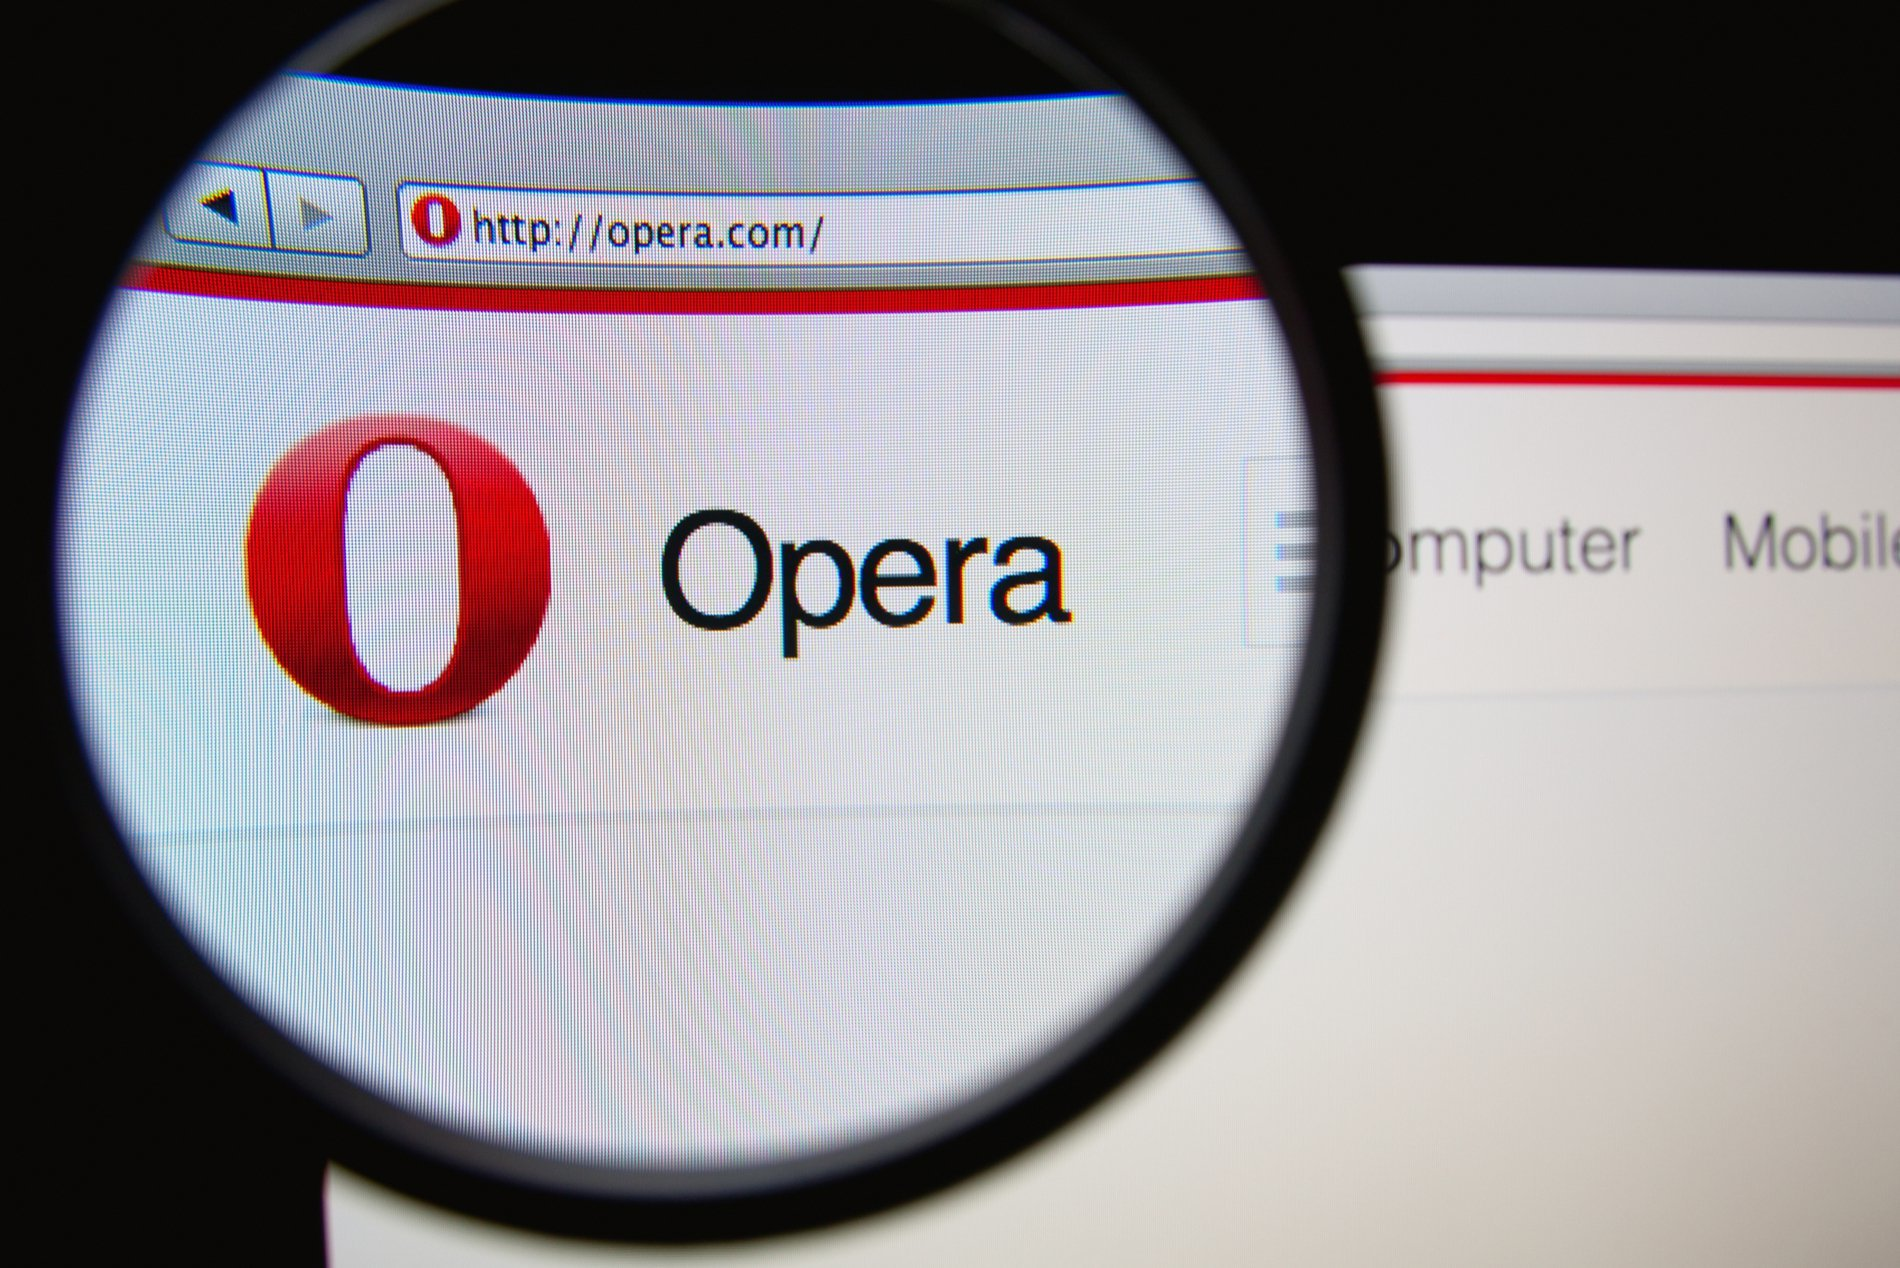 Opera Becomes First Major Browser to Integrate Crypto Domain Extension